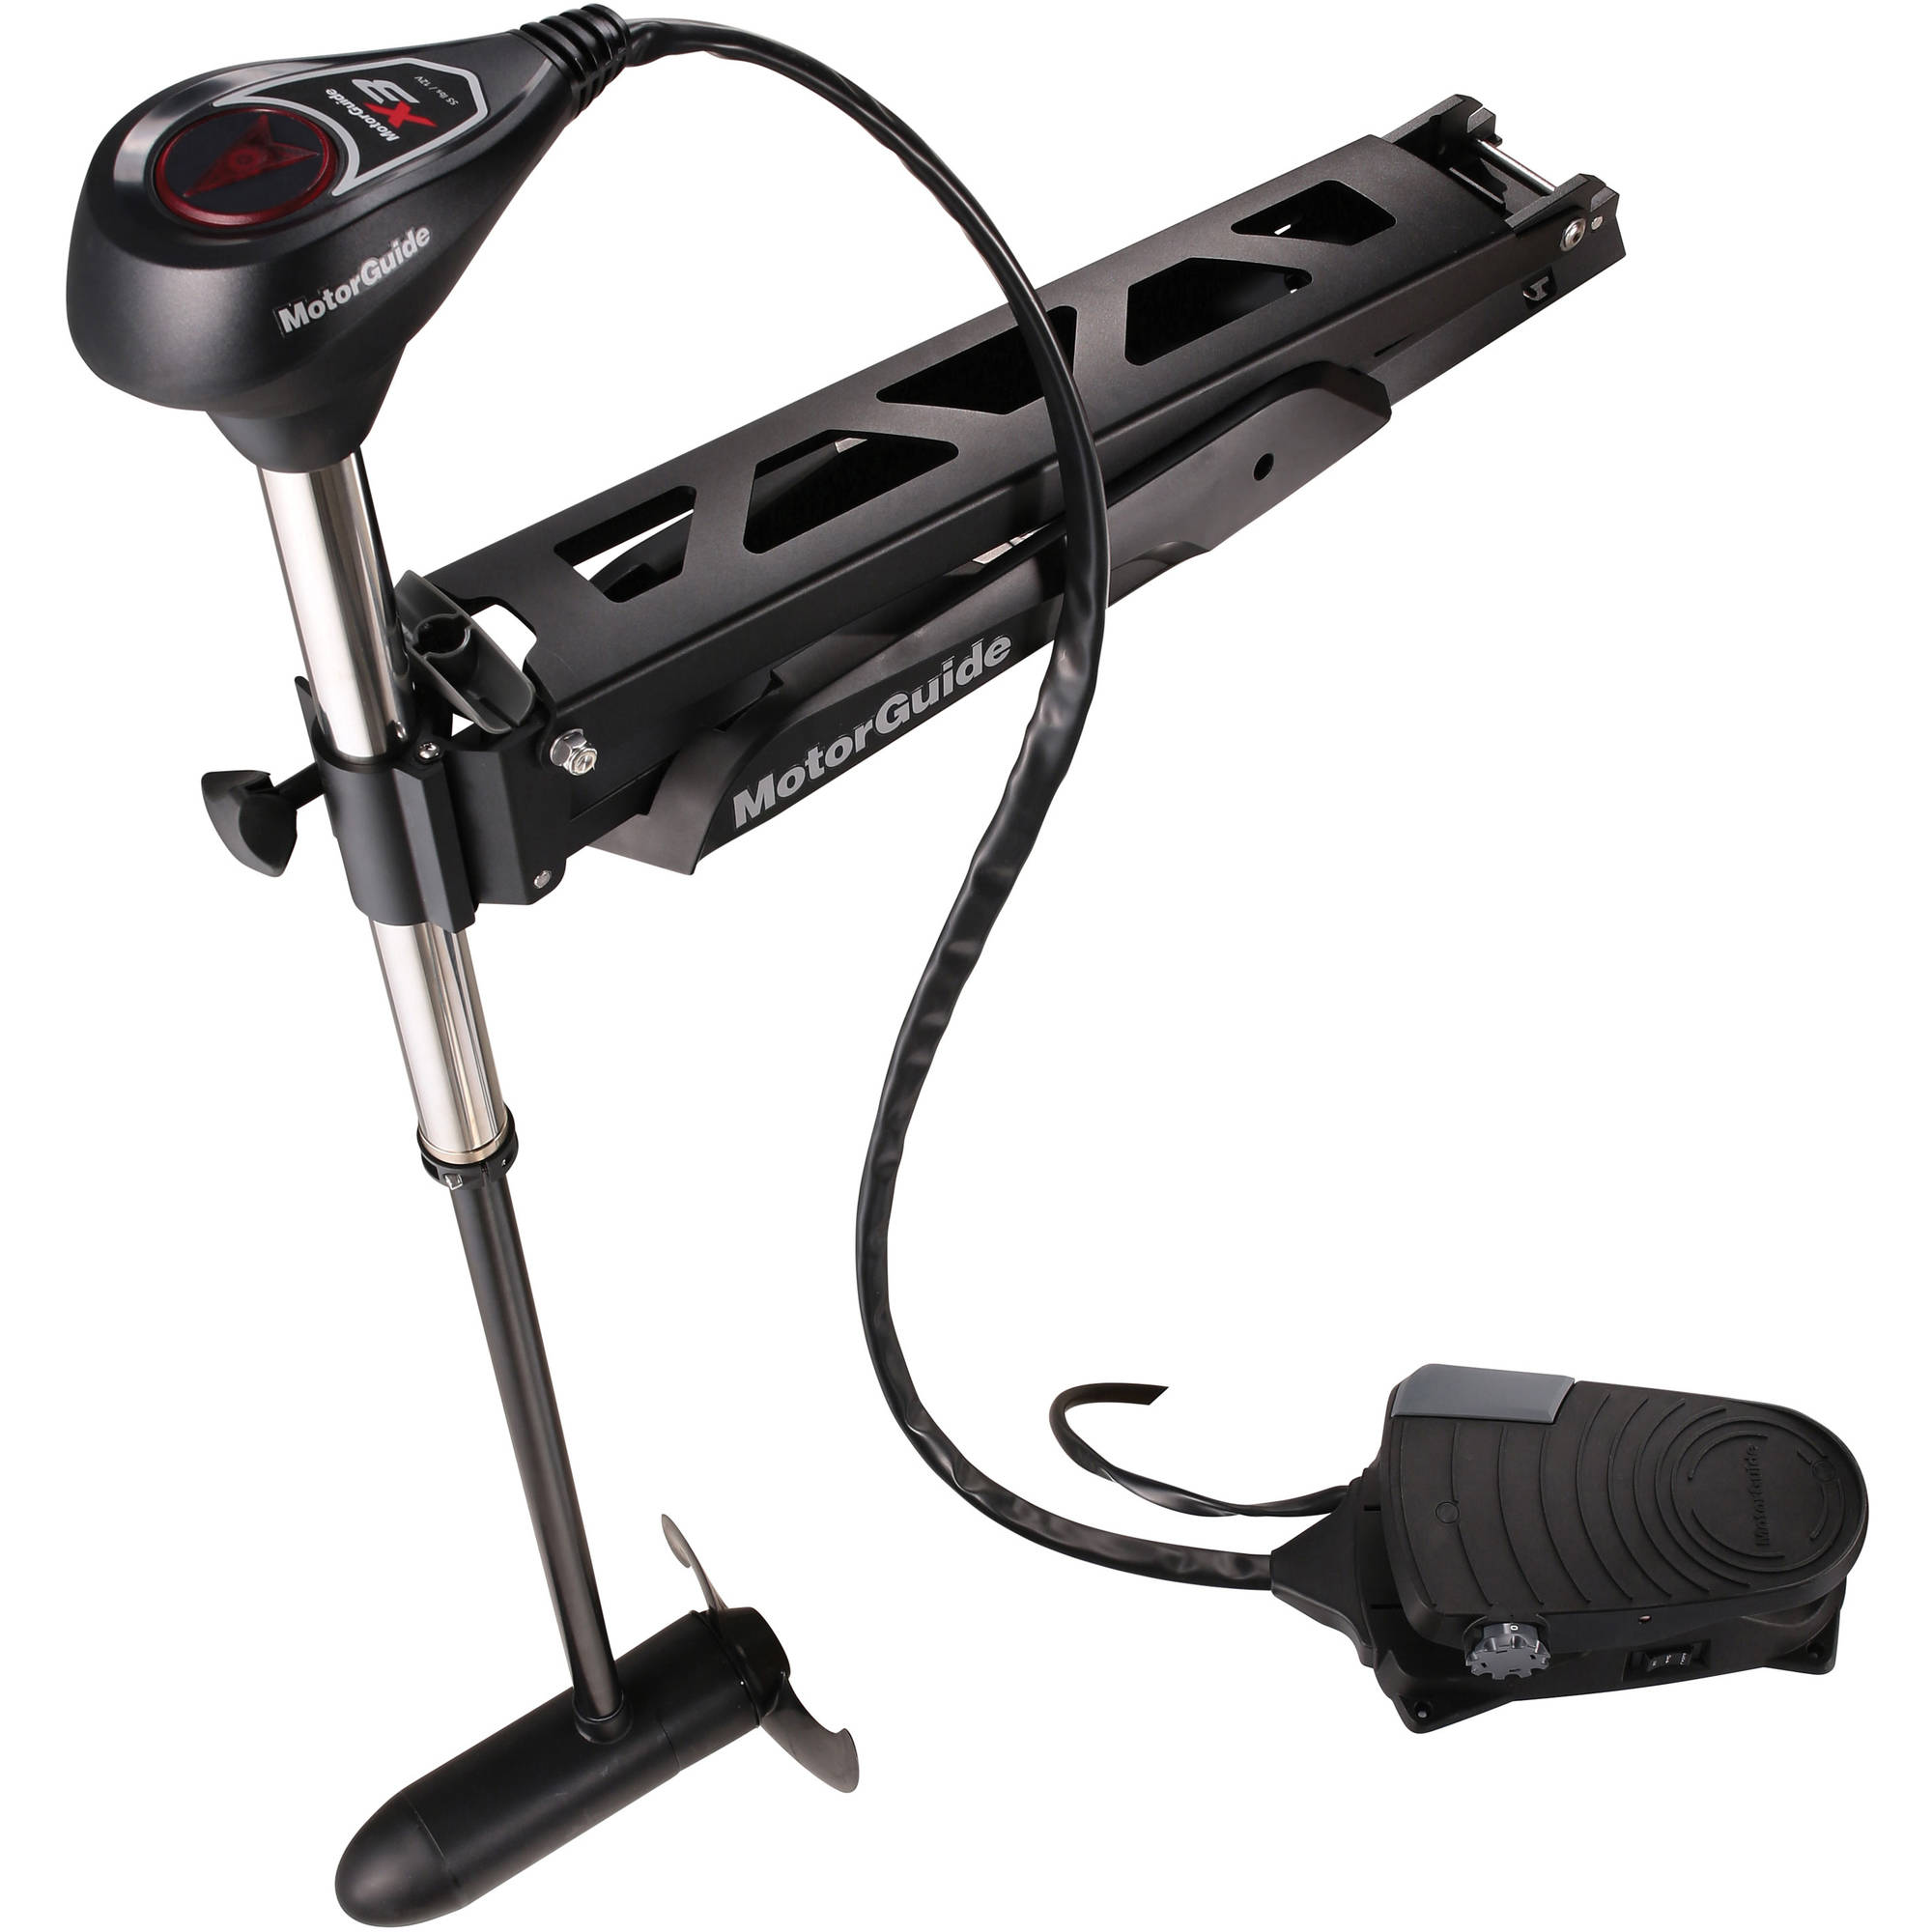 "MotorGuide X3 940200170 12V Foot-Control Bow Mount Freshwater Digital Variable Speed Trolling Motor 45"" Shaft 55 lb Thrust"